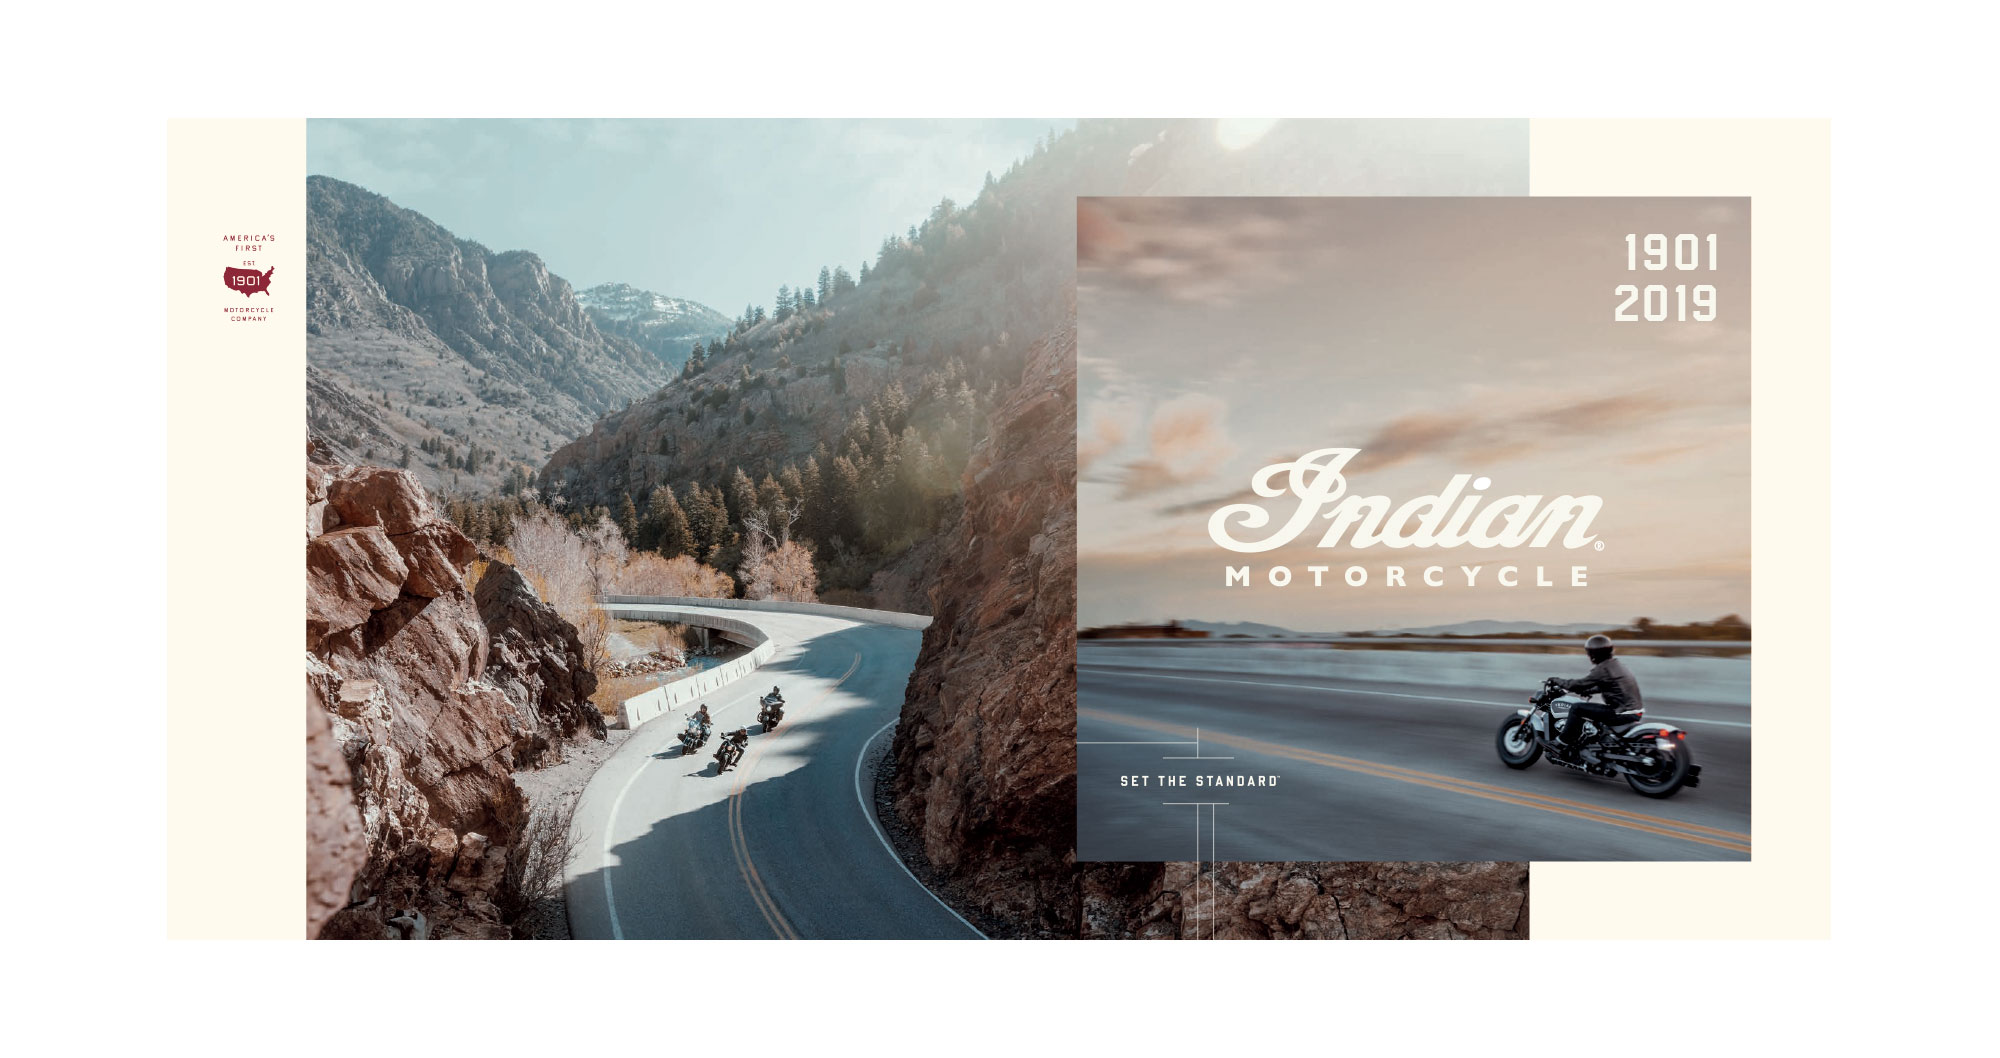 indian motorcycle scout riding through mountain pass catalog-cover-branding